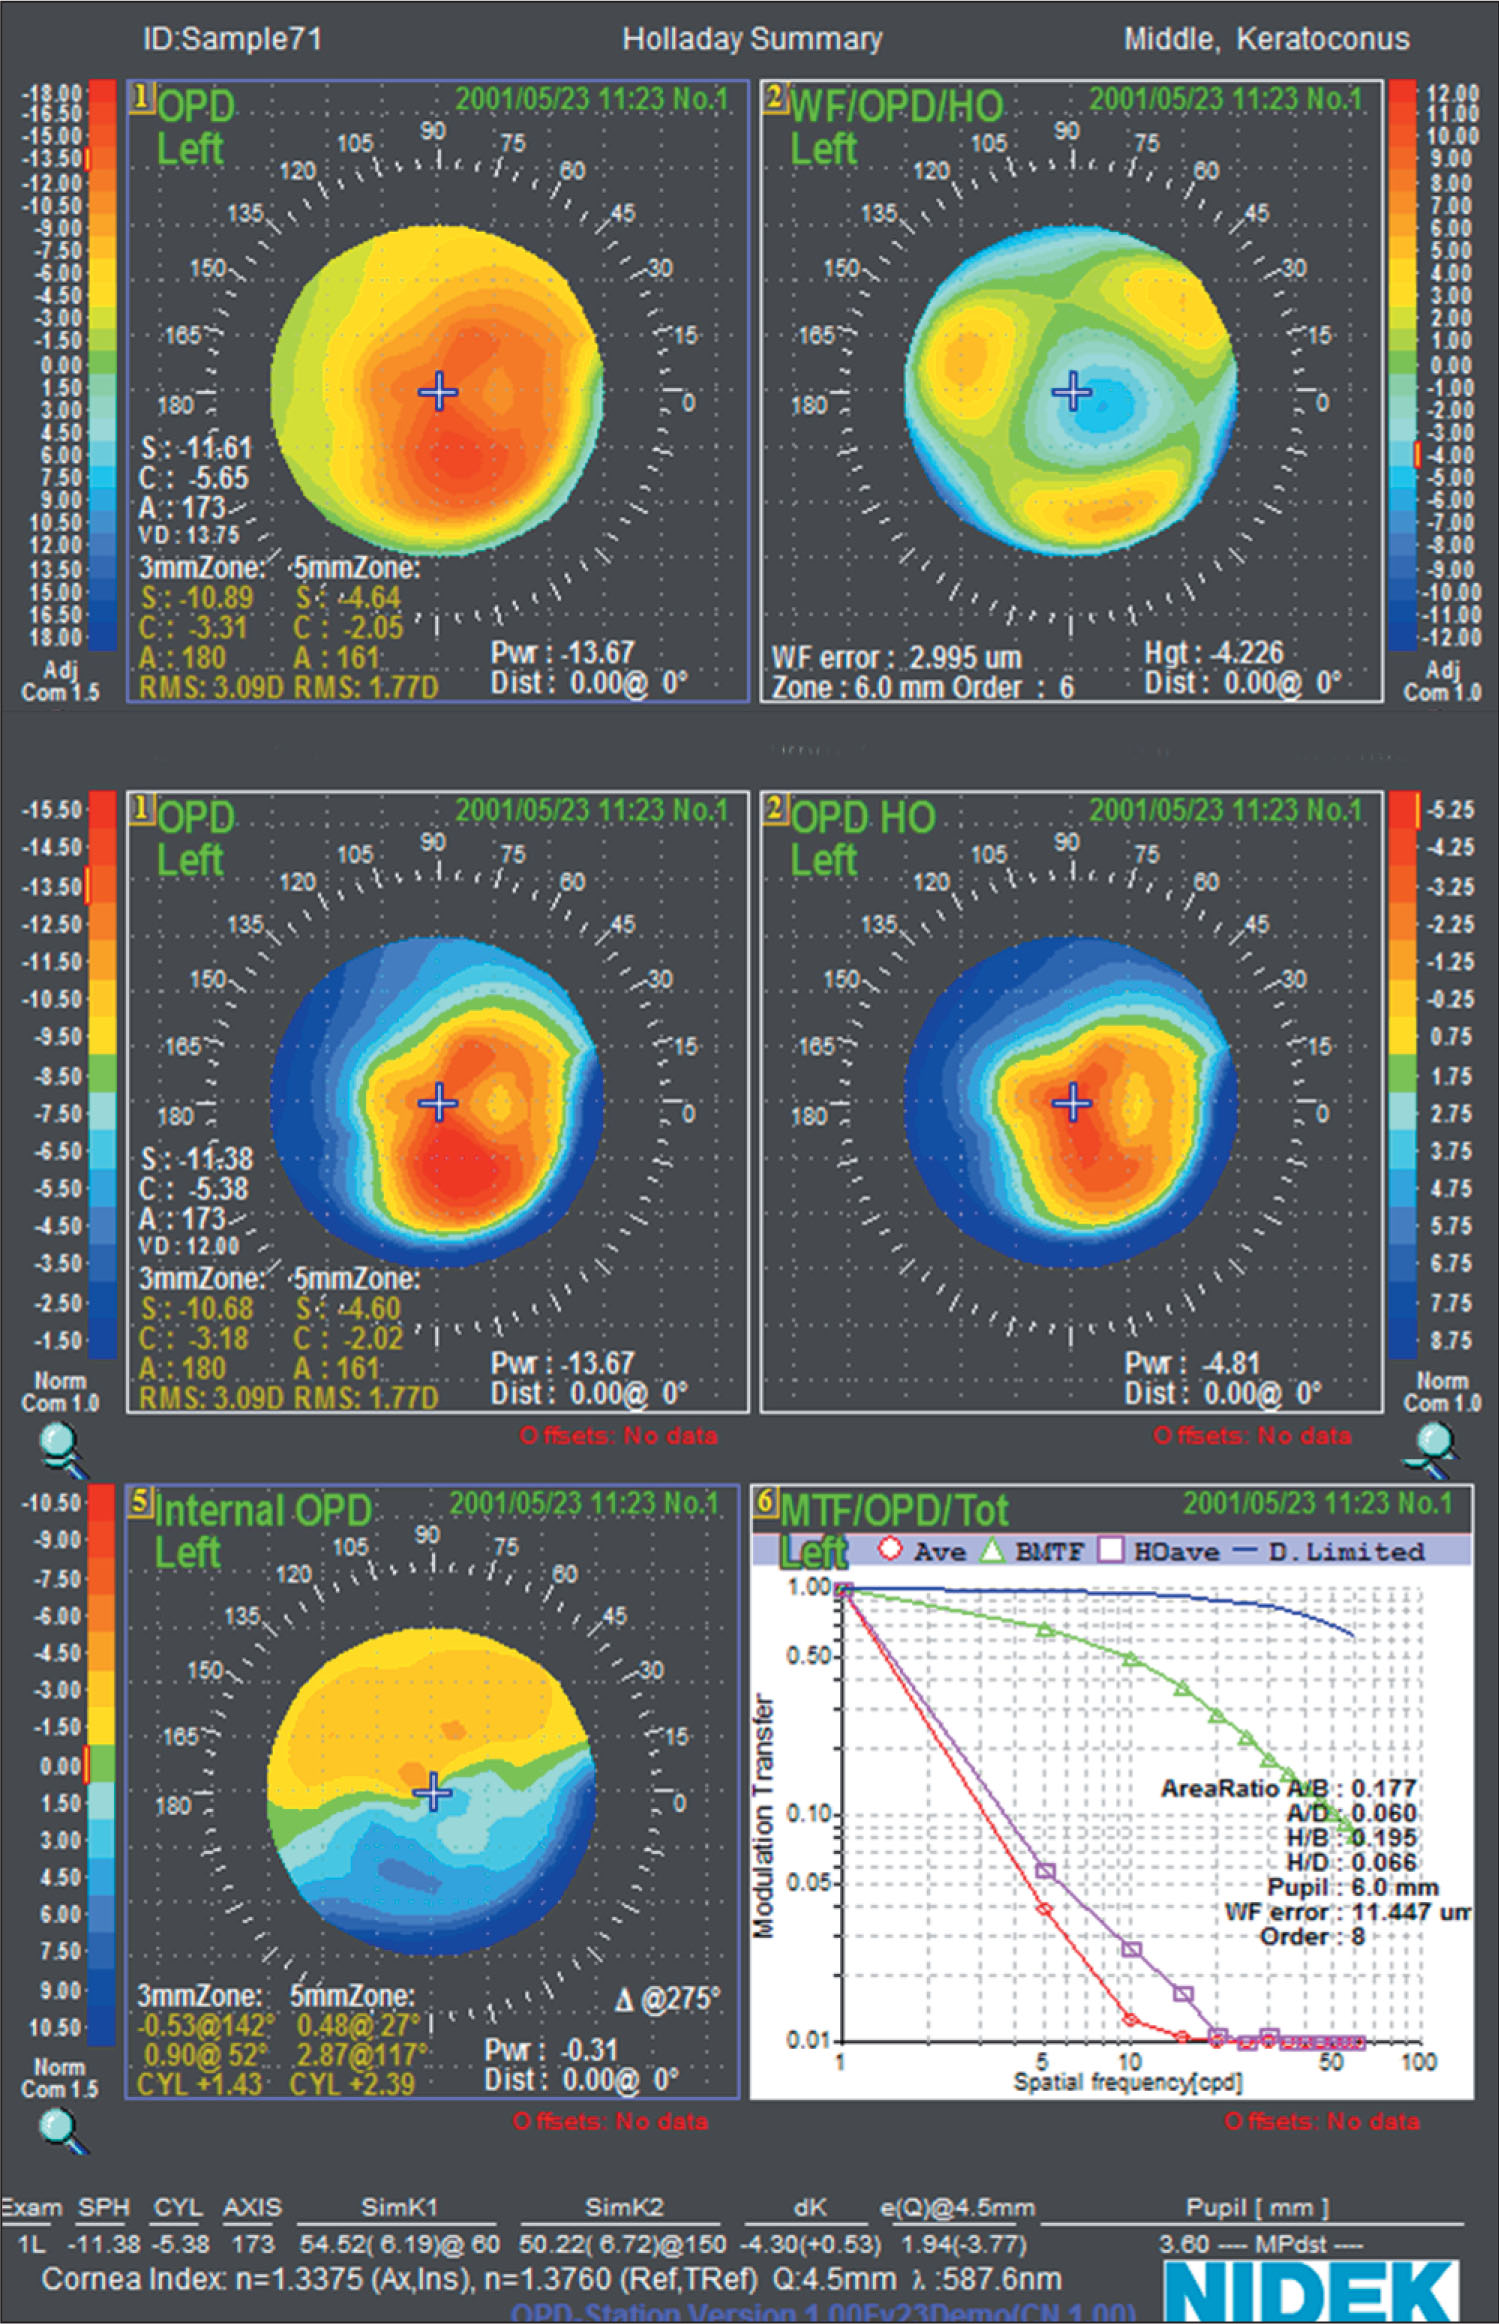 Wavefront Measurement of an Eye with Keratoconus. OPD, OPD Higher Order (HO), and Internal OPD Maps Are Refractive Wavefront Maps Plotted in Diopters. The Wavefront HO Map Is a Wavefront Map Plotted in Microns. MTF = Modulation Transfer Function